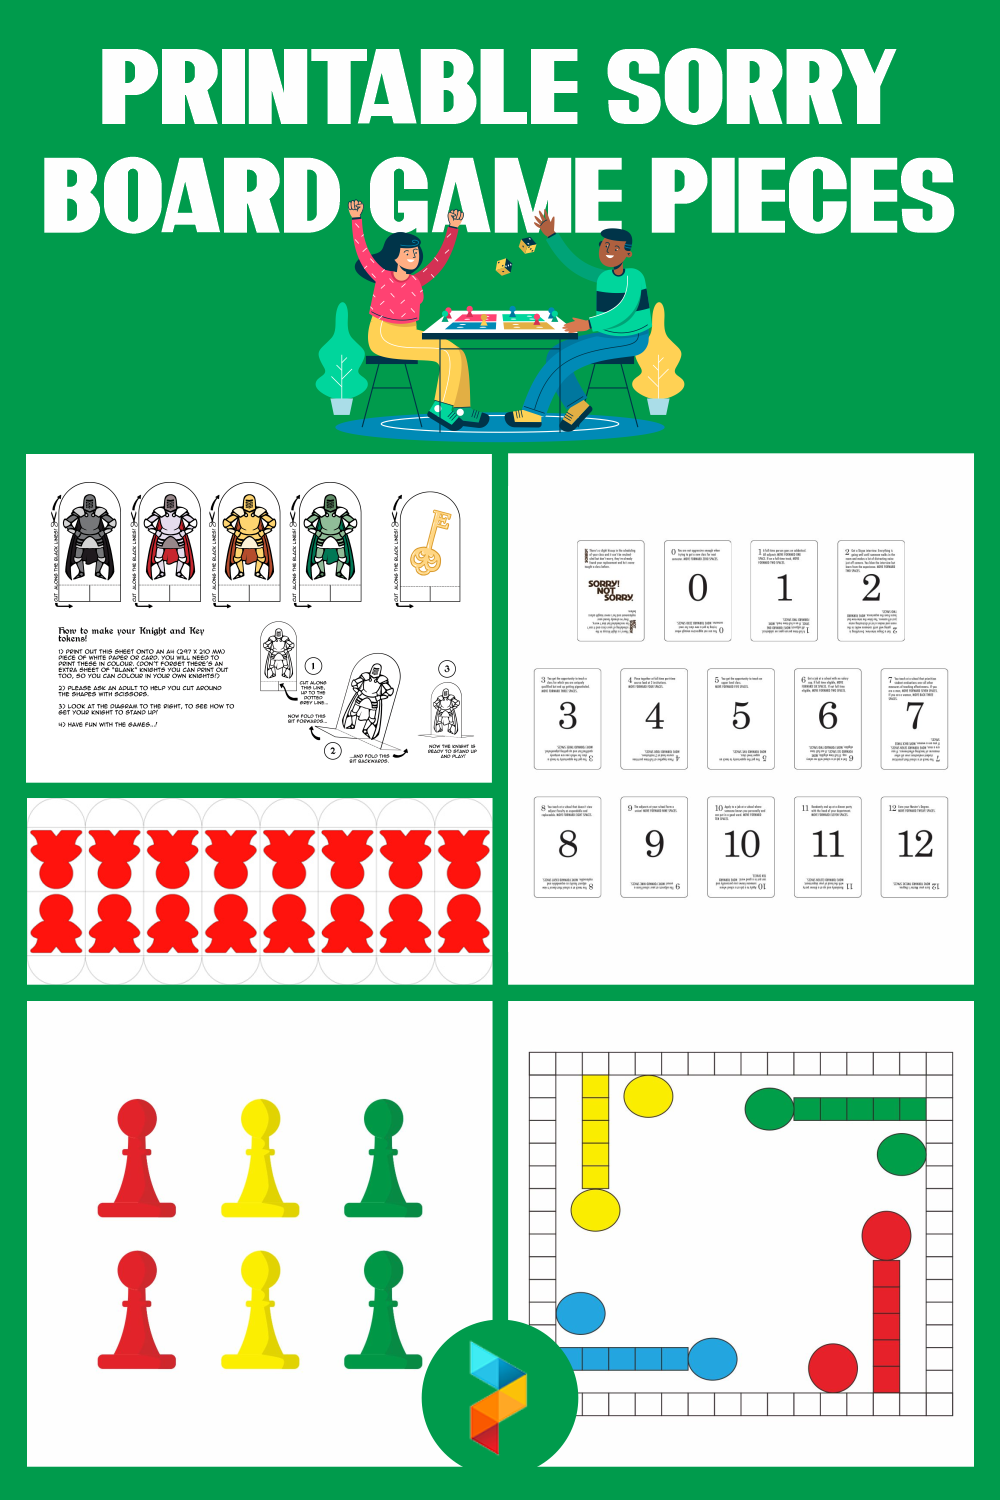 Printable Sorry Board Game Pieces